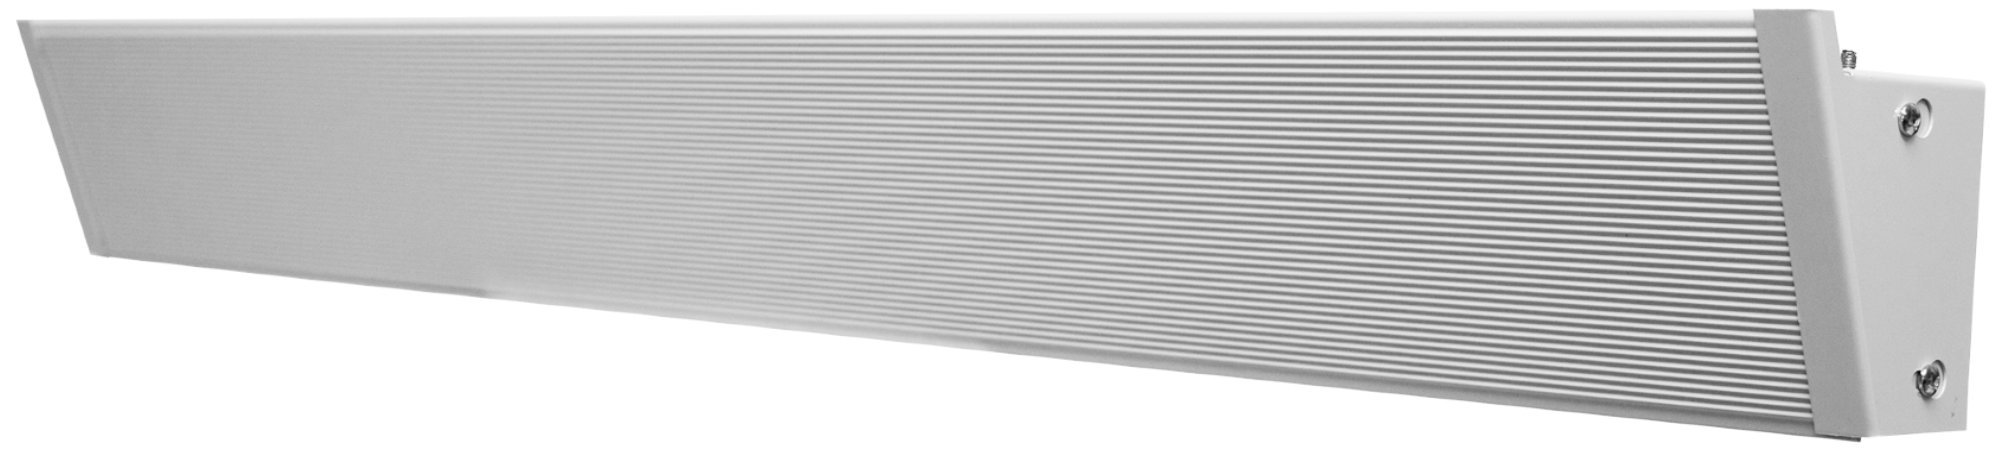 King Electric 750-Watt 240-Volt 59-Inch Radiant Convection Cove Heater, White